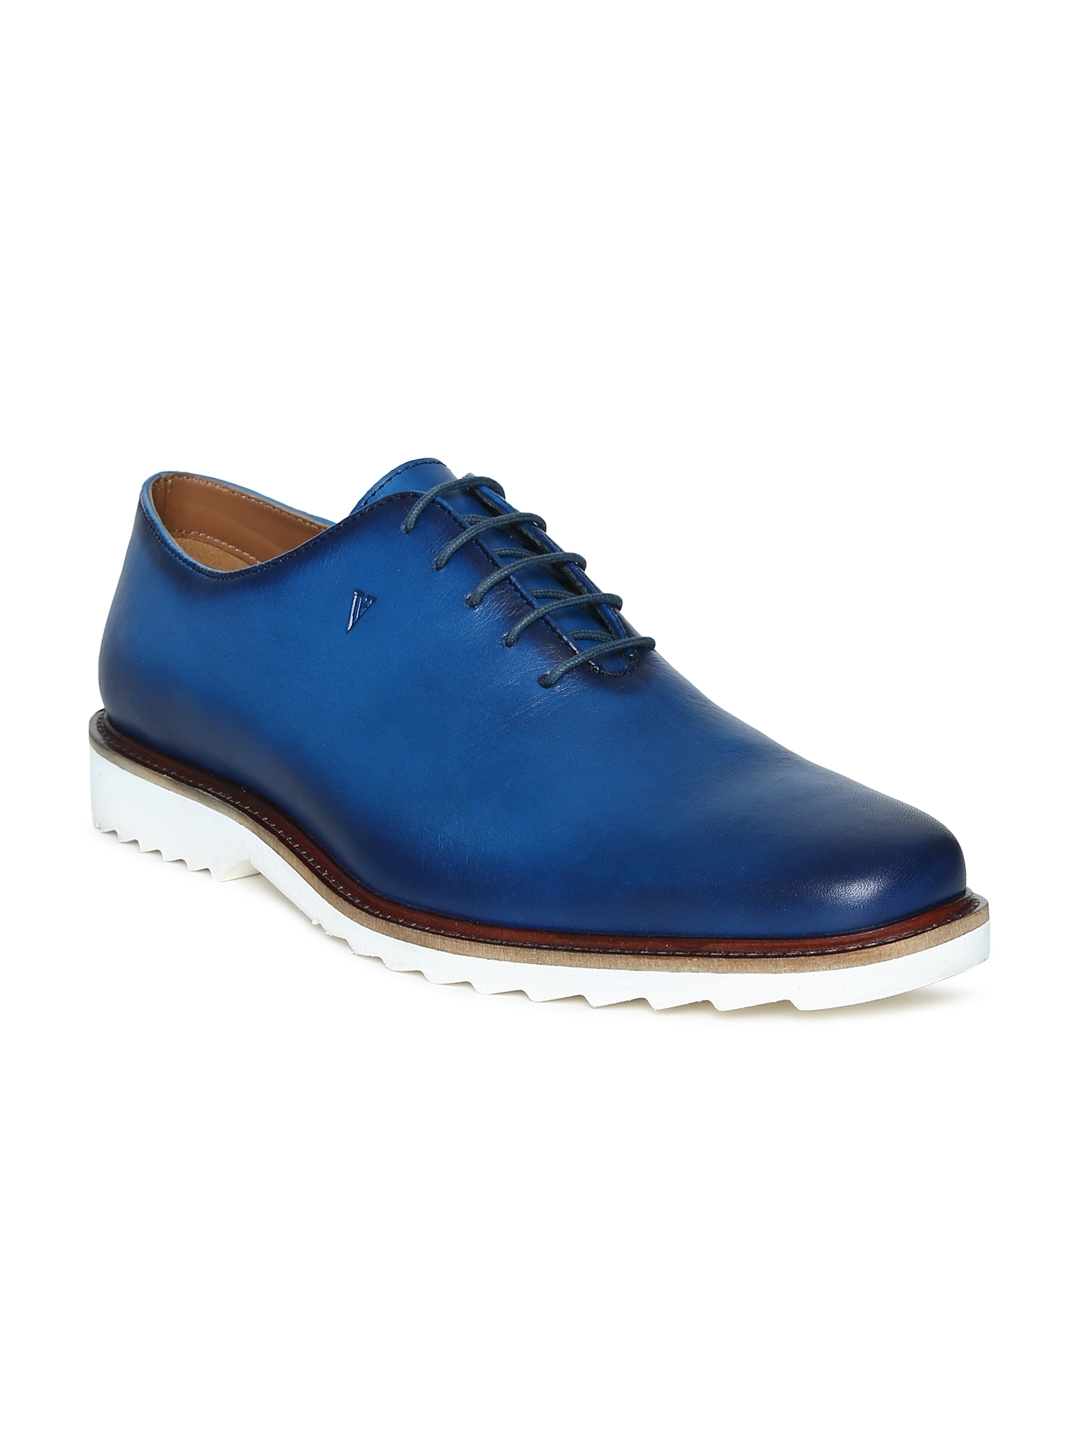 ea7c8cd6d5 Buy Van Heusen Men Blue Oxfords - Formal Shoes for Men 5492278